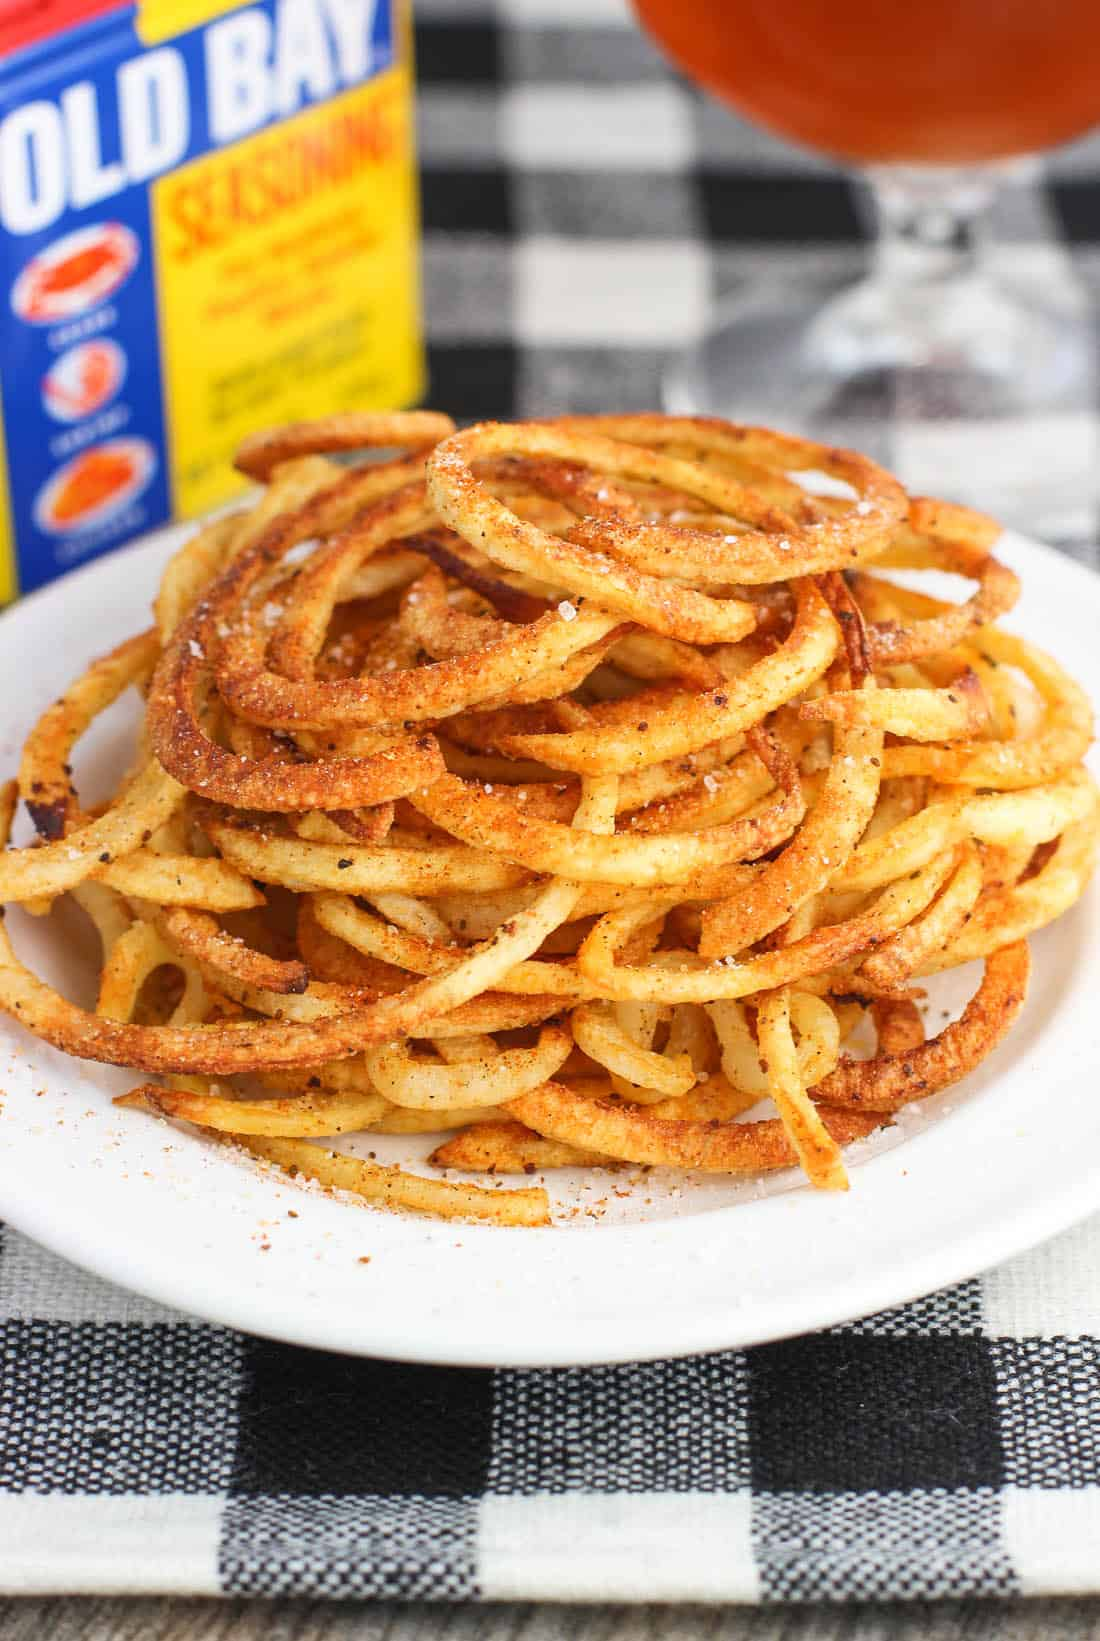 A heap of Old Bay seasoned curly fries on a plate.